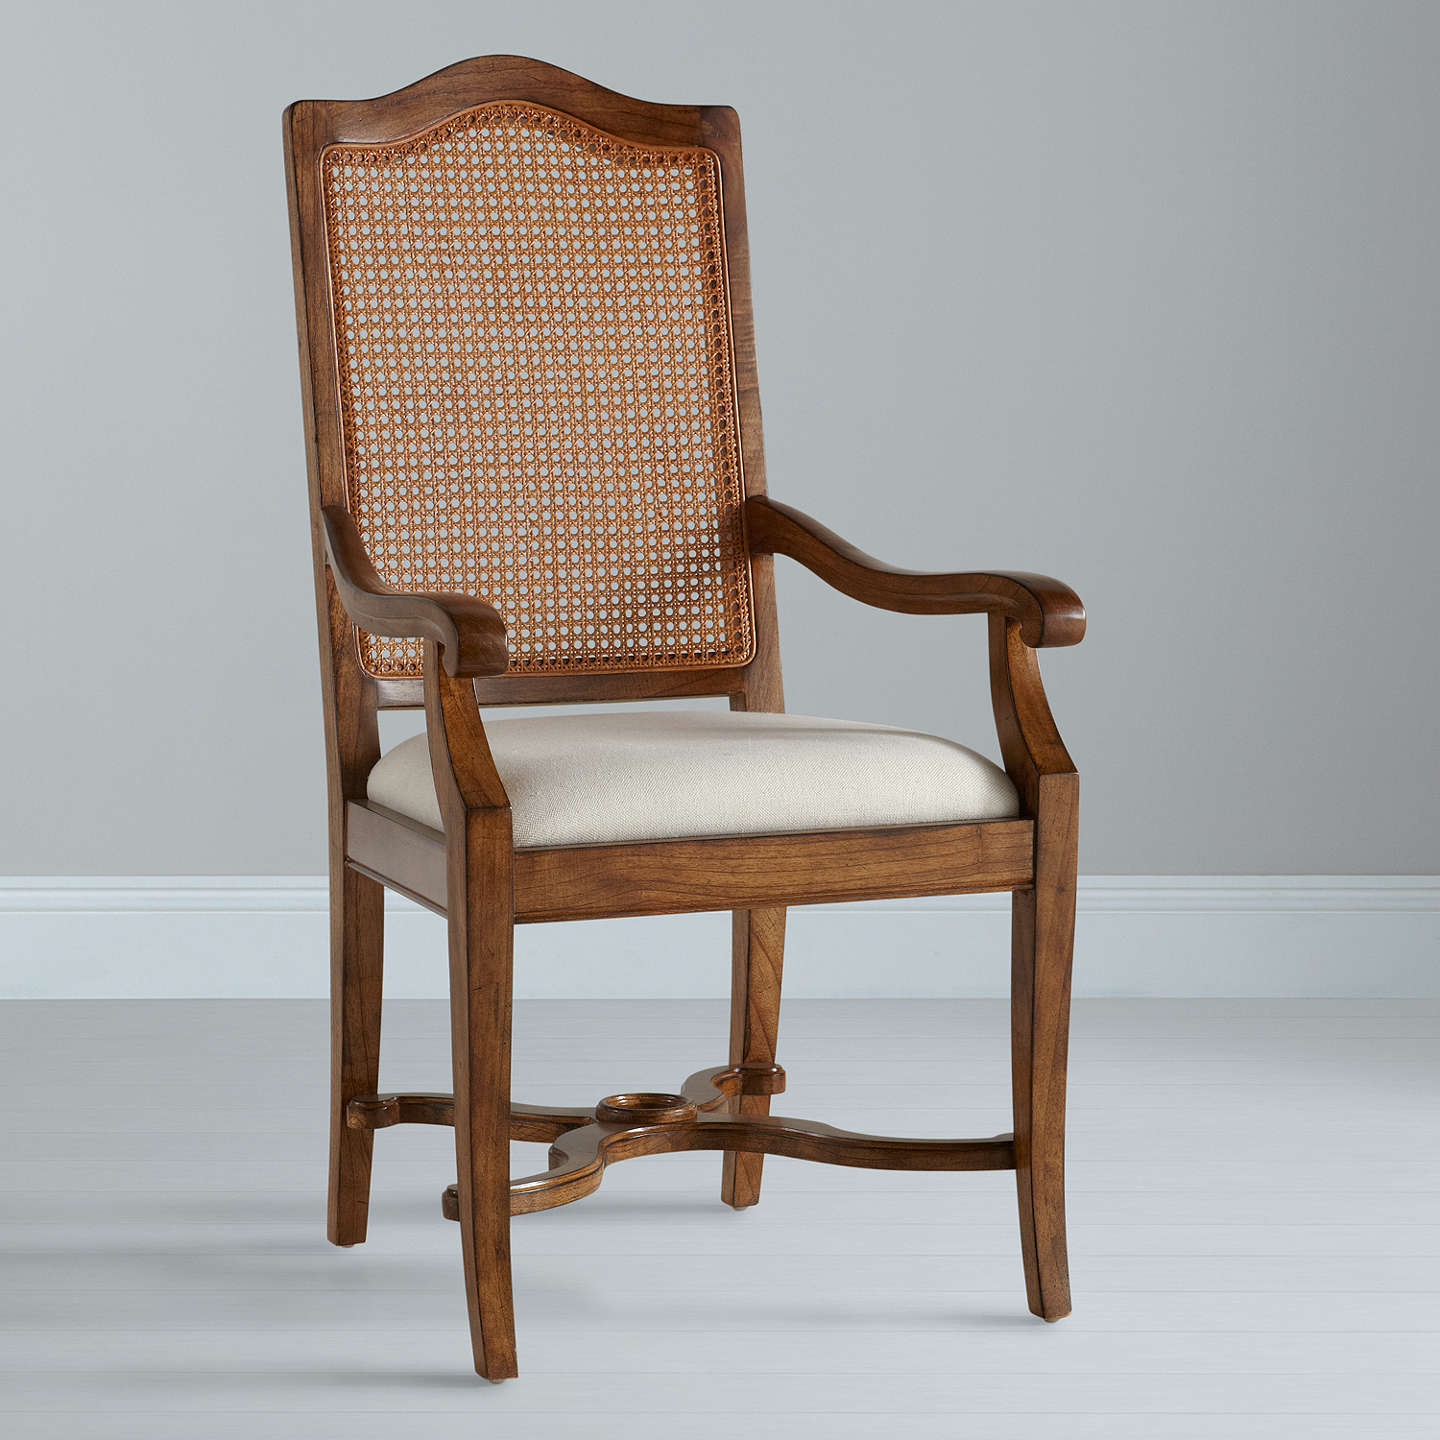 BuyJohn Lewis Hemingway Cane Carver Chair Online at johnlewis.com